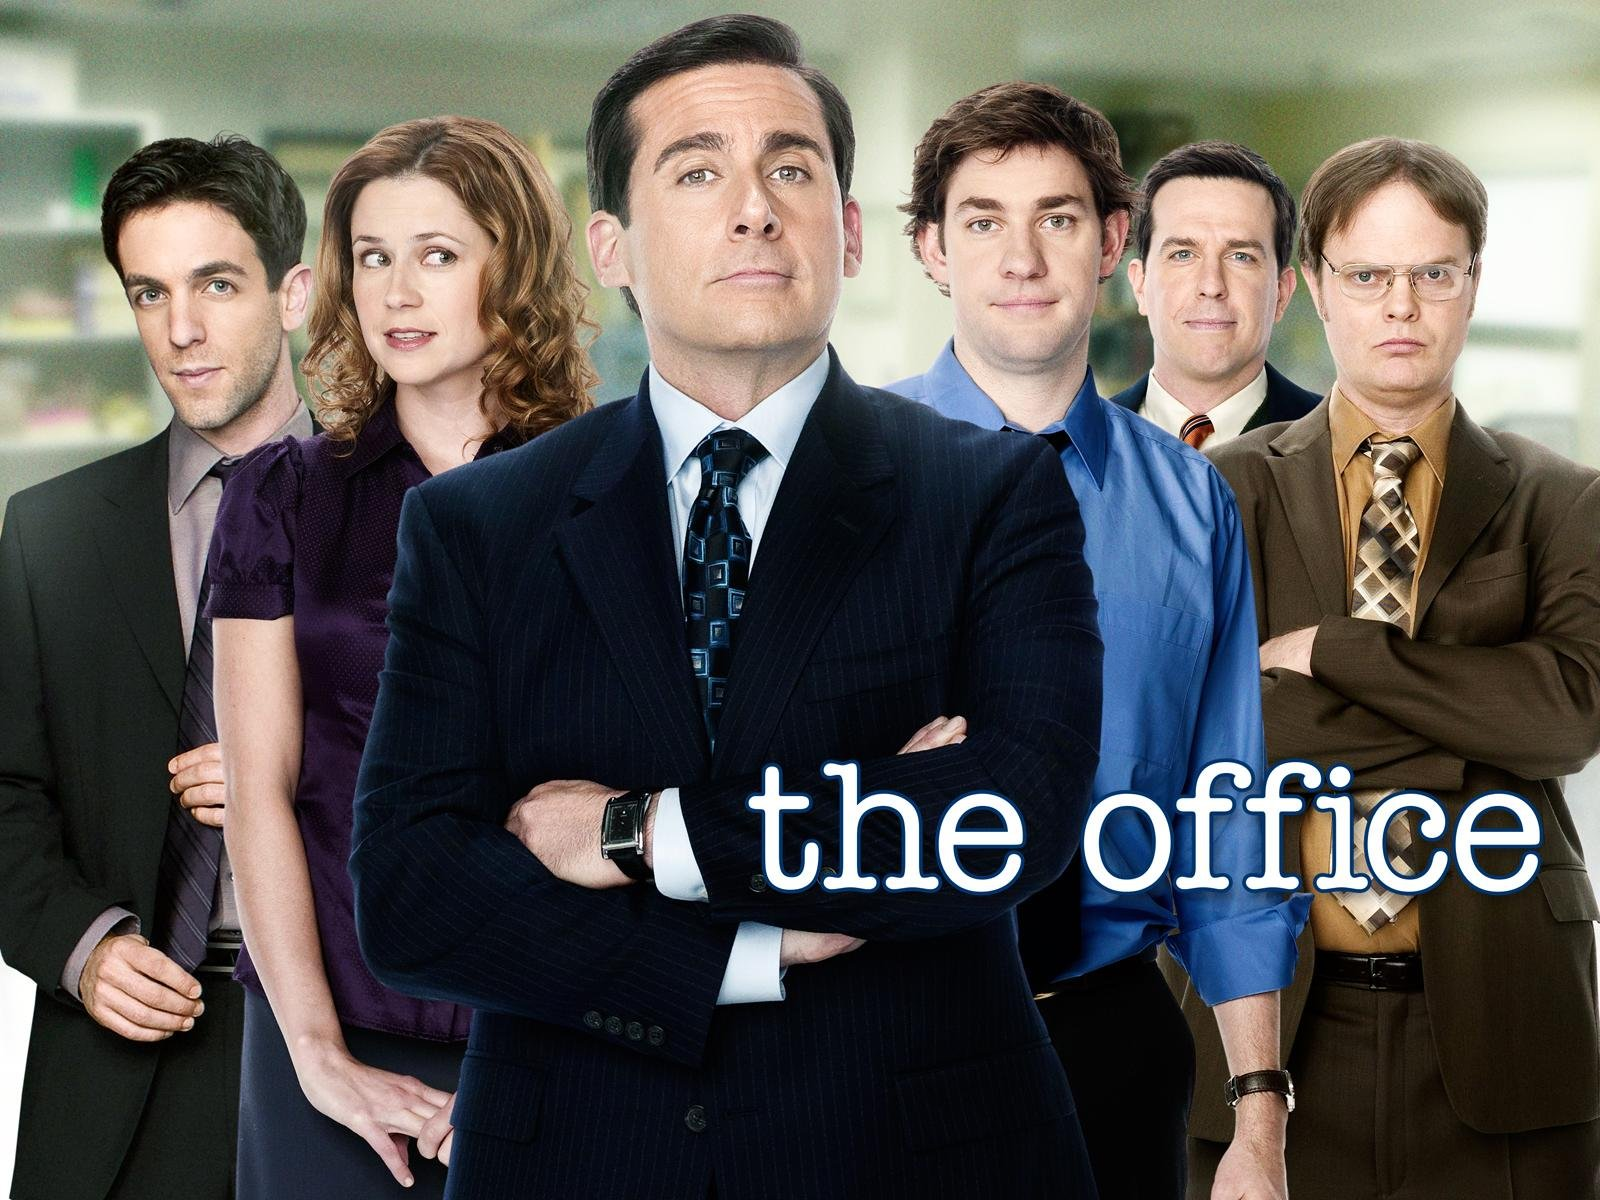 Amazon.com: The Office Season 7: Steve Carell, Rainn Wilson, John ...